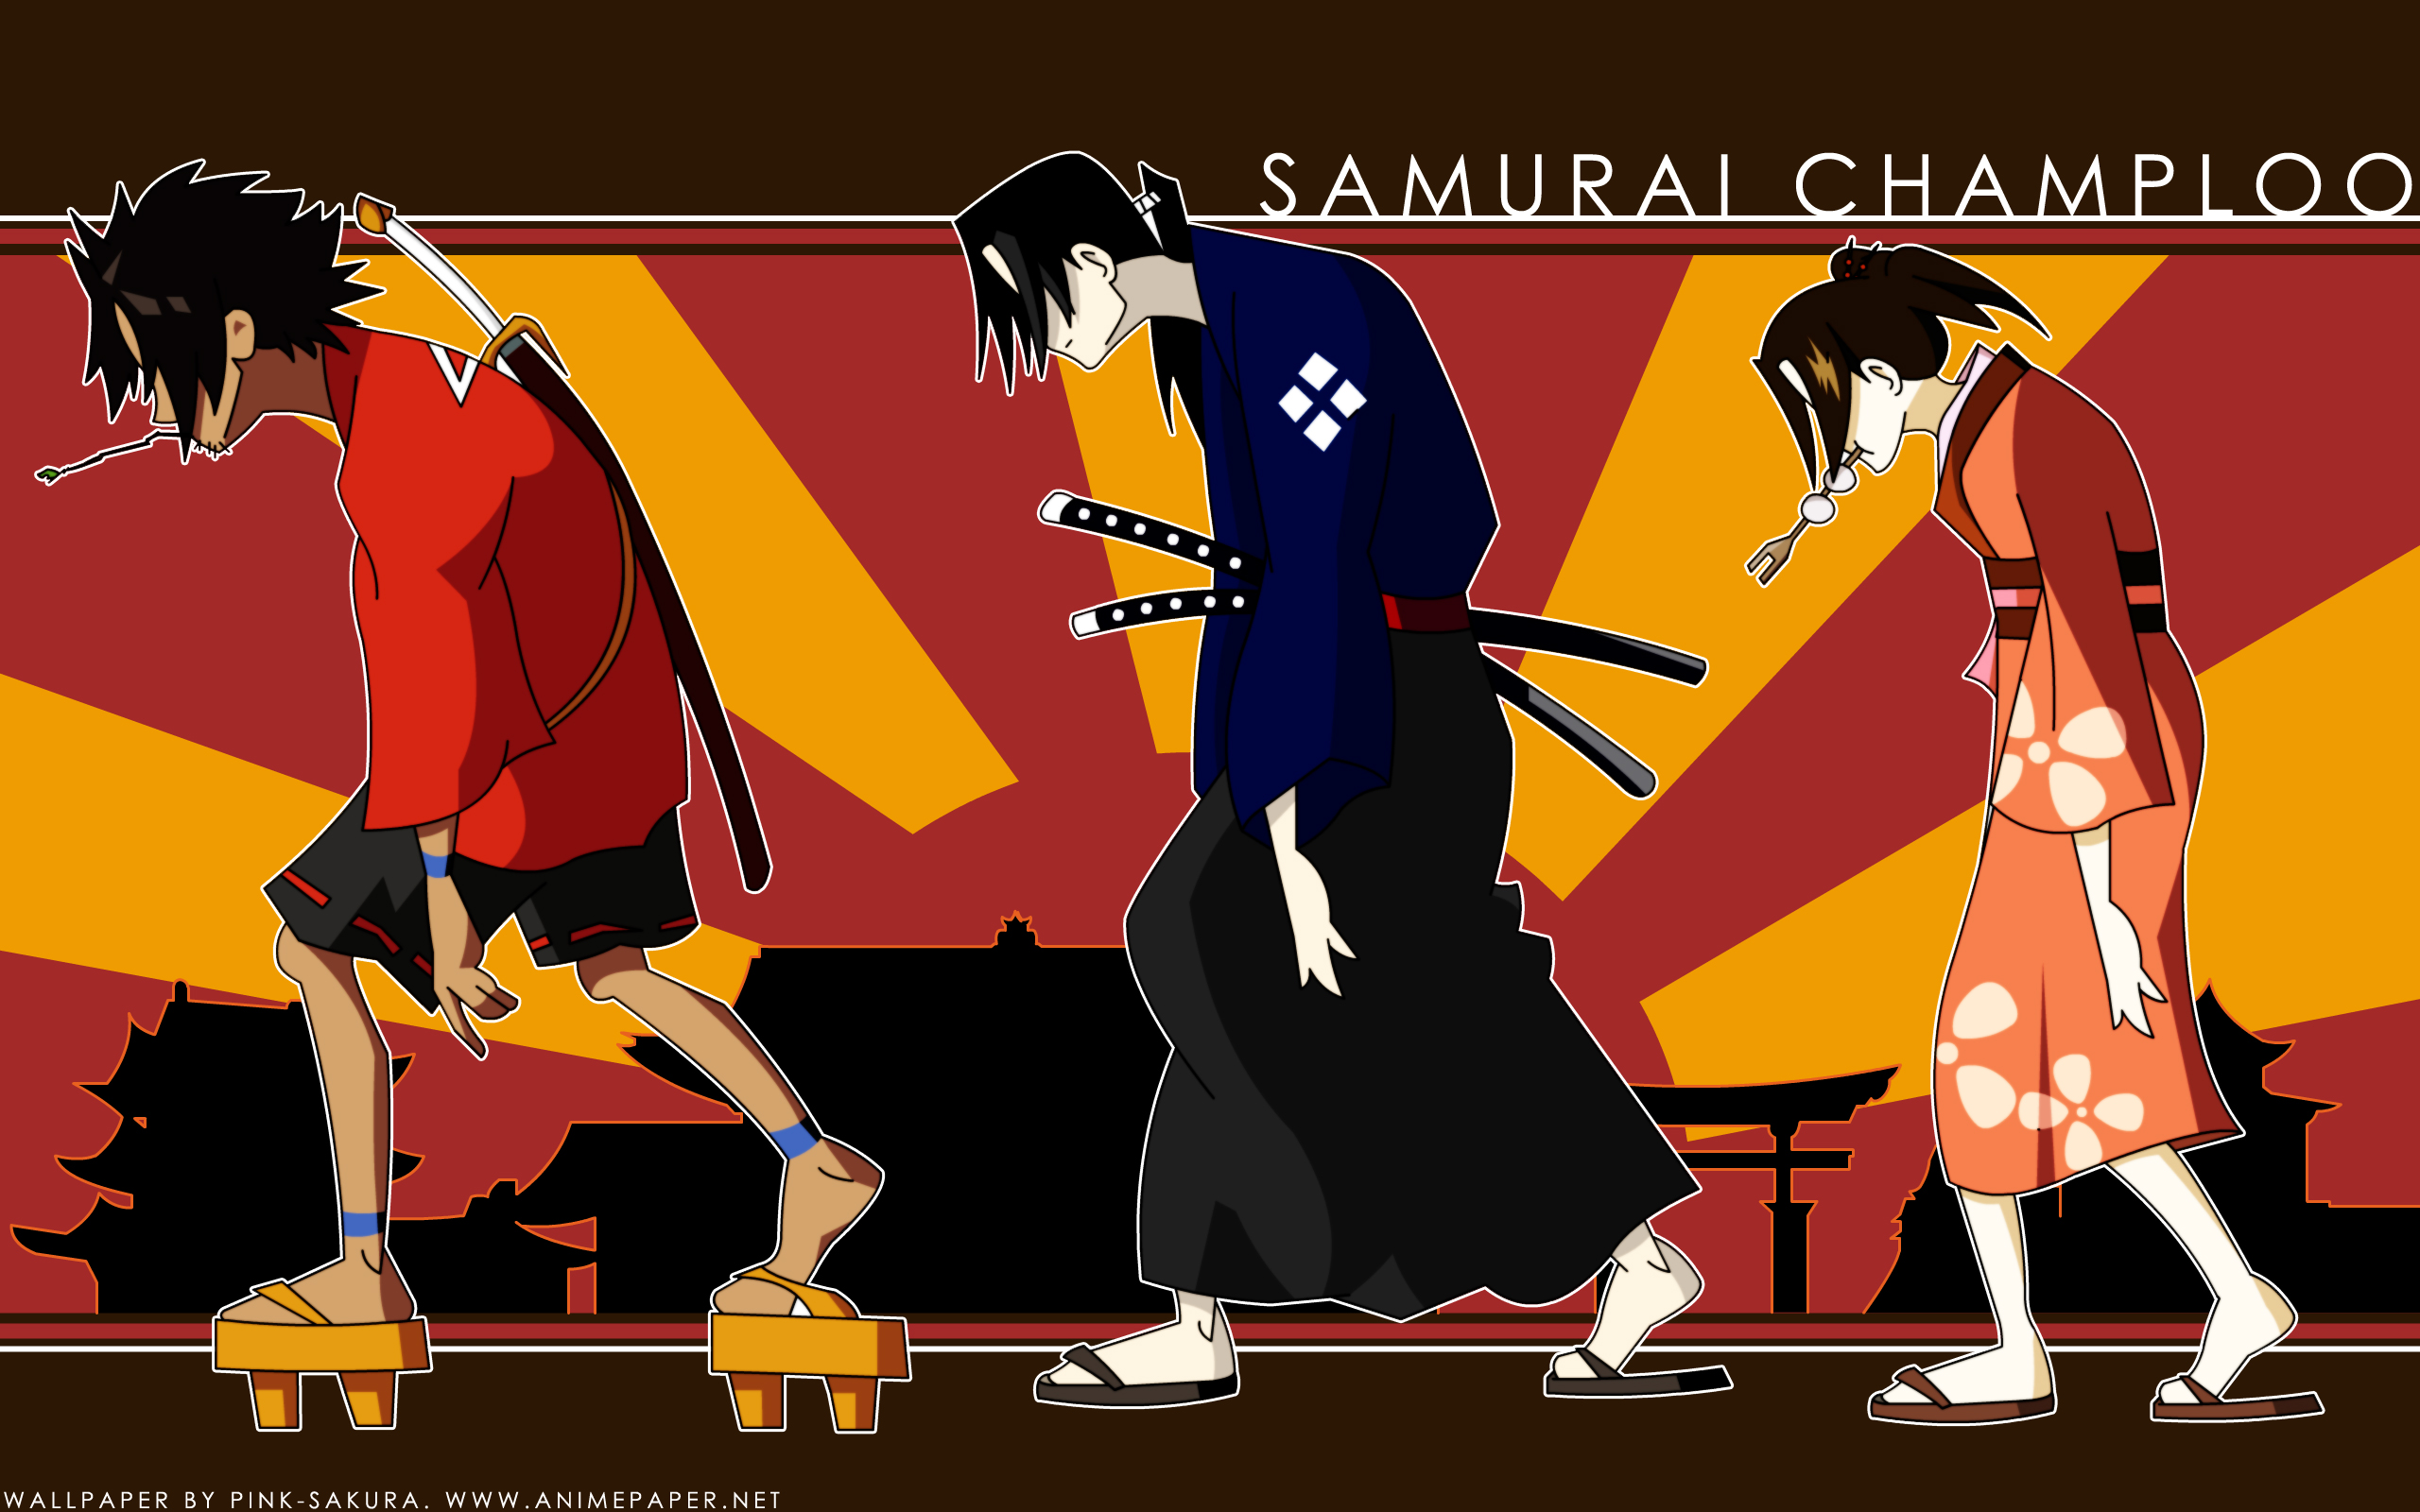 samurai champloo Jin mugen HD Wallpaper